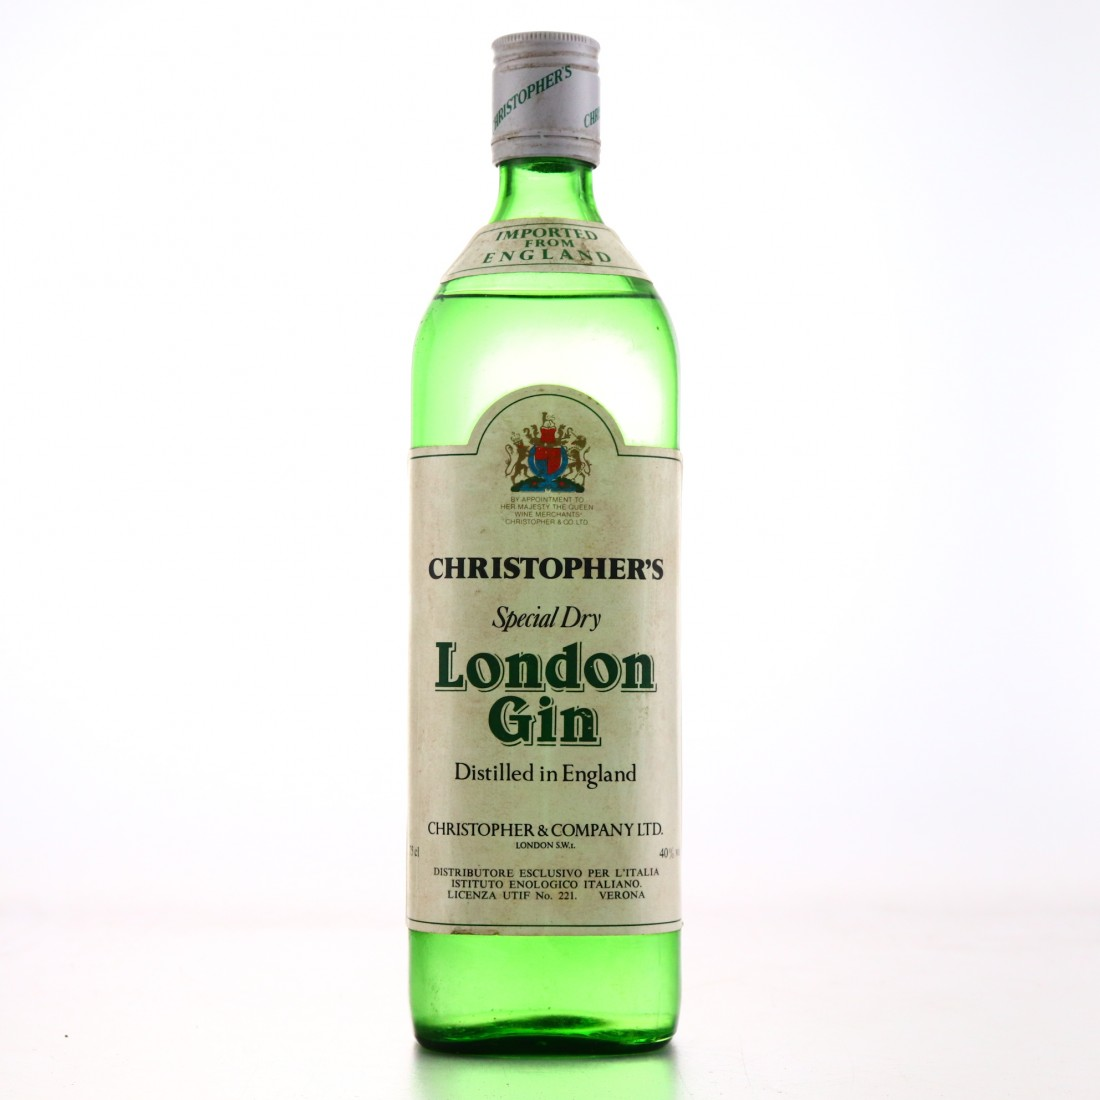 Christopher's Special Dry London Gin 1960s